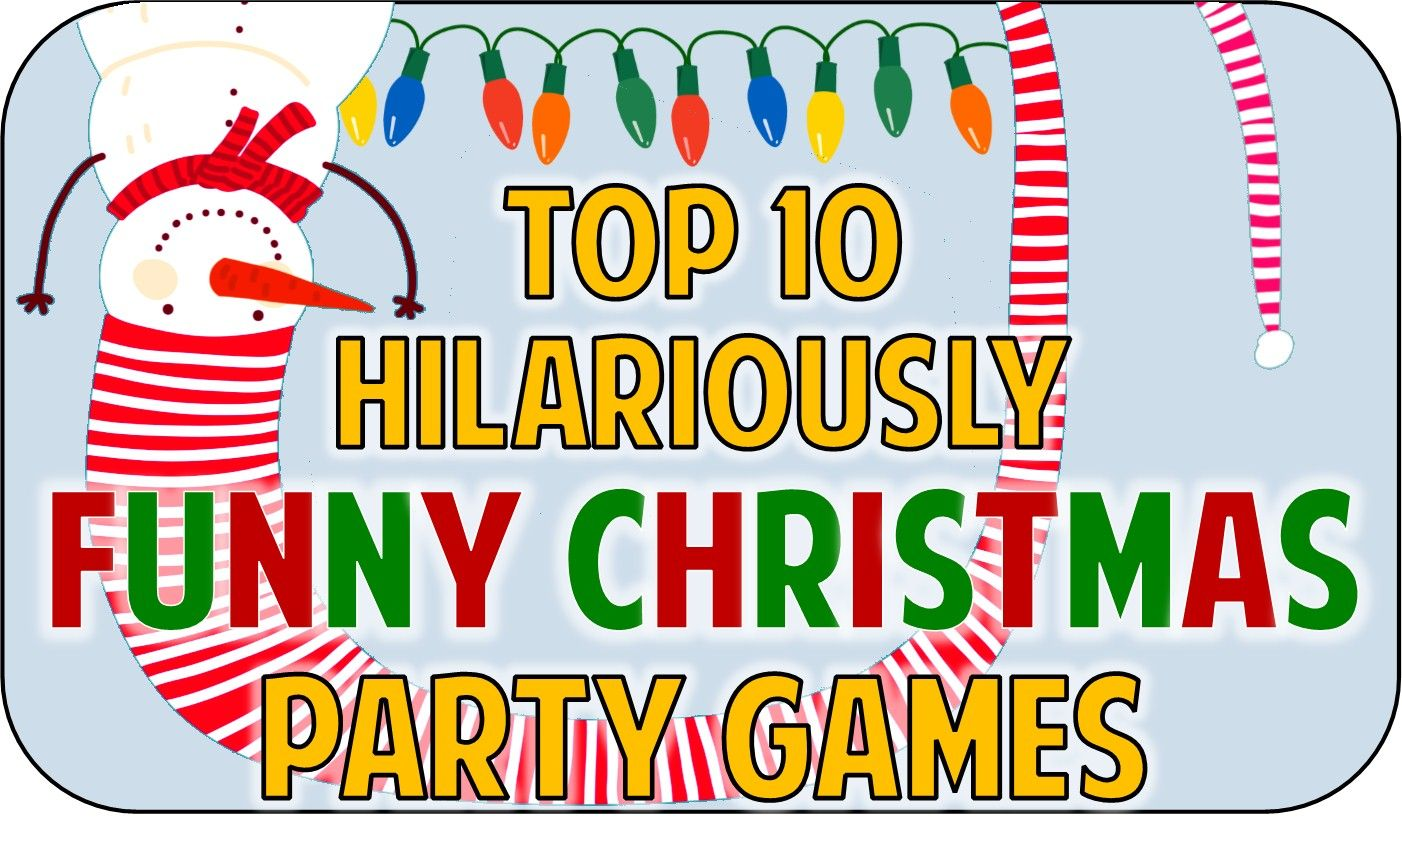 Awesome Work Christmas Party Games Ideas Part - 3: Hilarious Christmas Party Game Ideas To Add Some Fun And Festivity To Your  Holiday Bash!